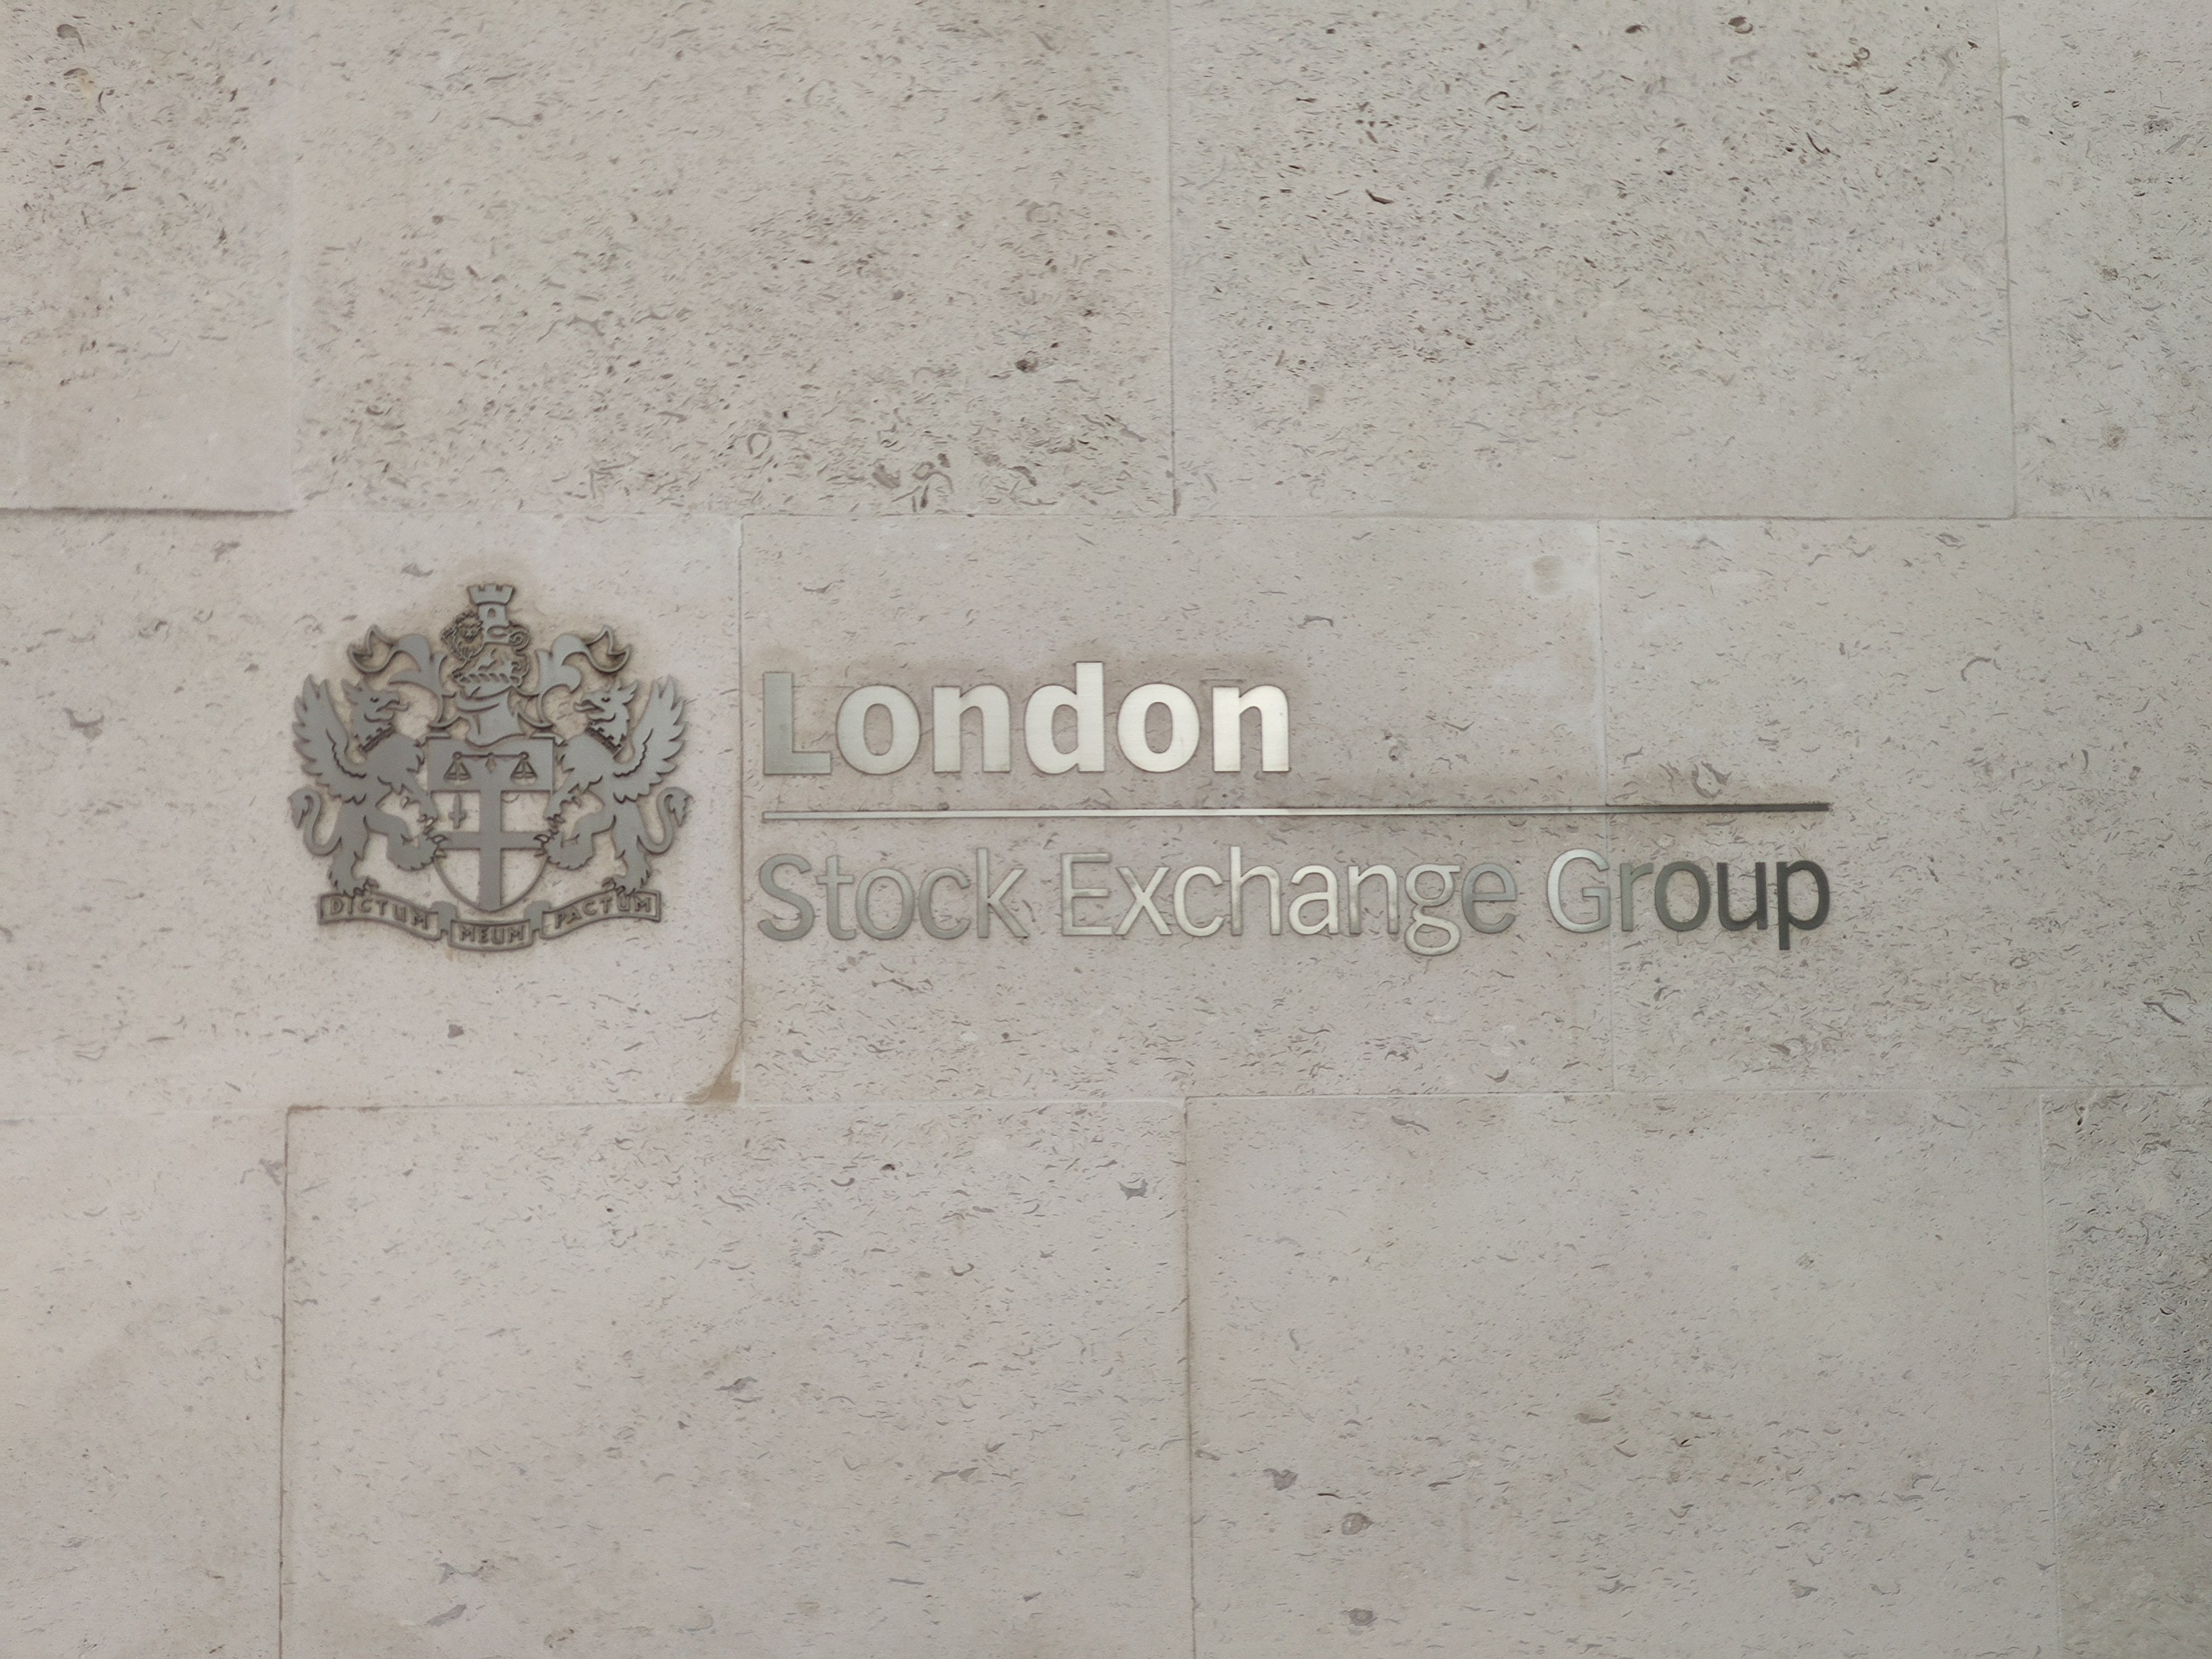 Sign on the London Stock Exchange building